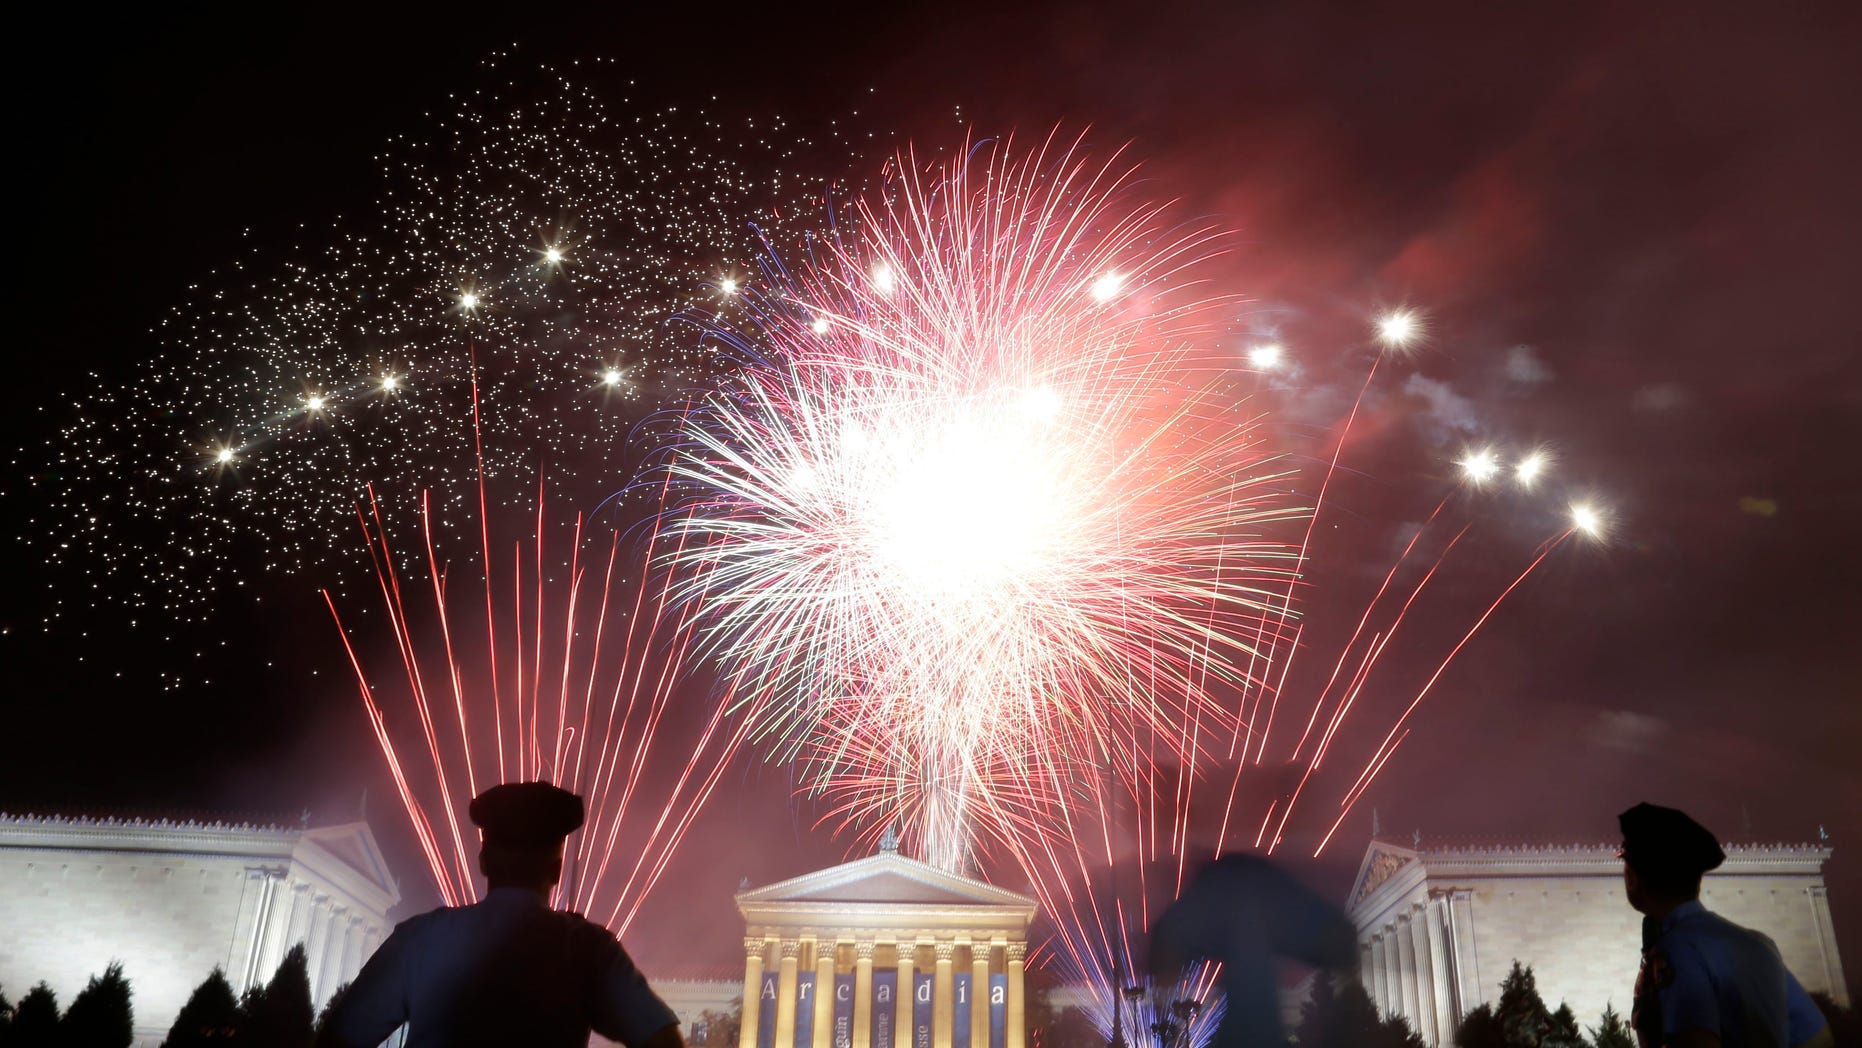 Fireworks light up the sky over the Philadelphia Museum of Art during an Independence Day celebration, Wednesday, July 4, 2012, in Philadelphia. (AP Photo/Matt Rourke)